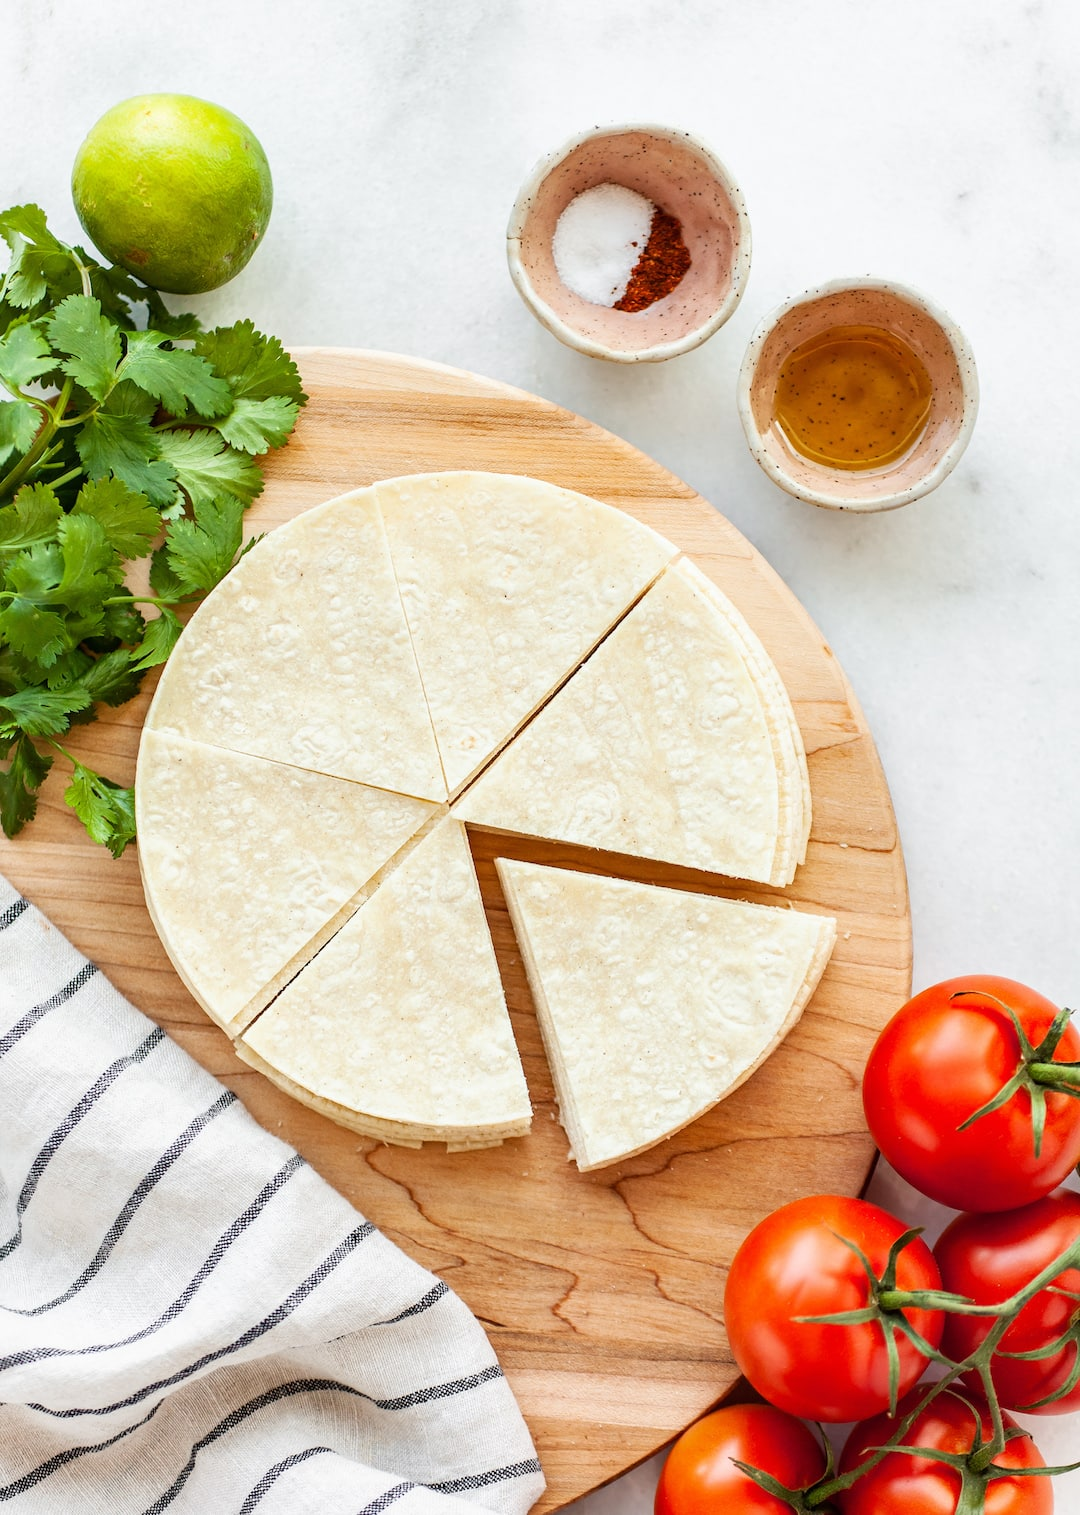 Ingredients for homemade air fryer tortilla chips